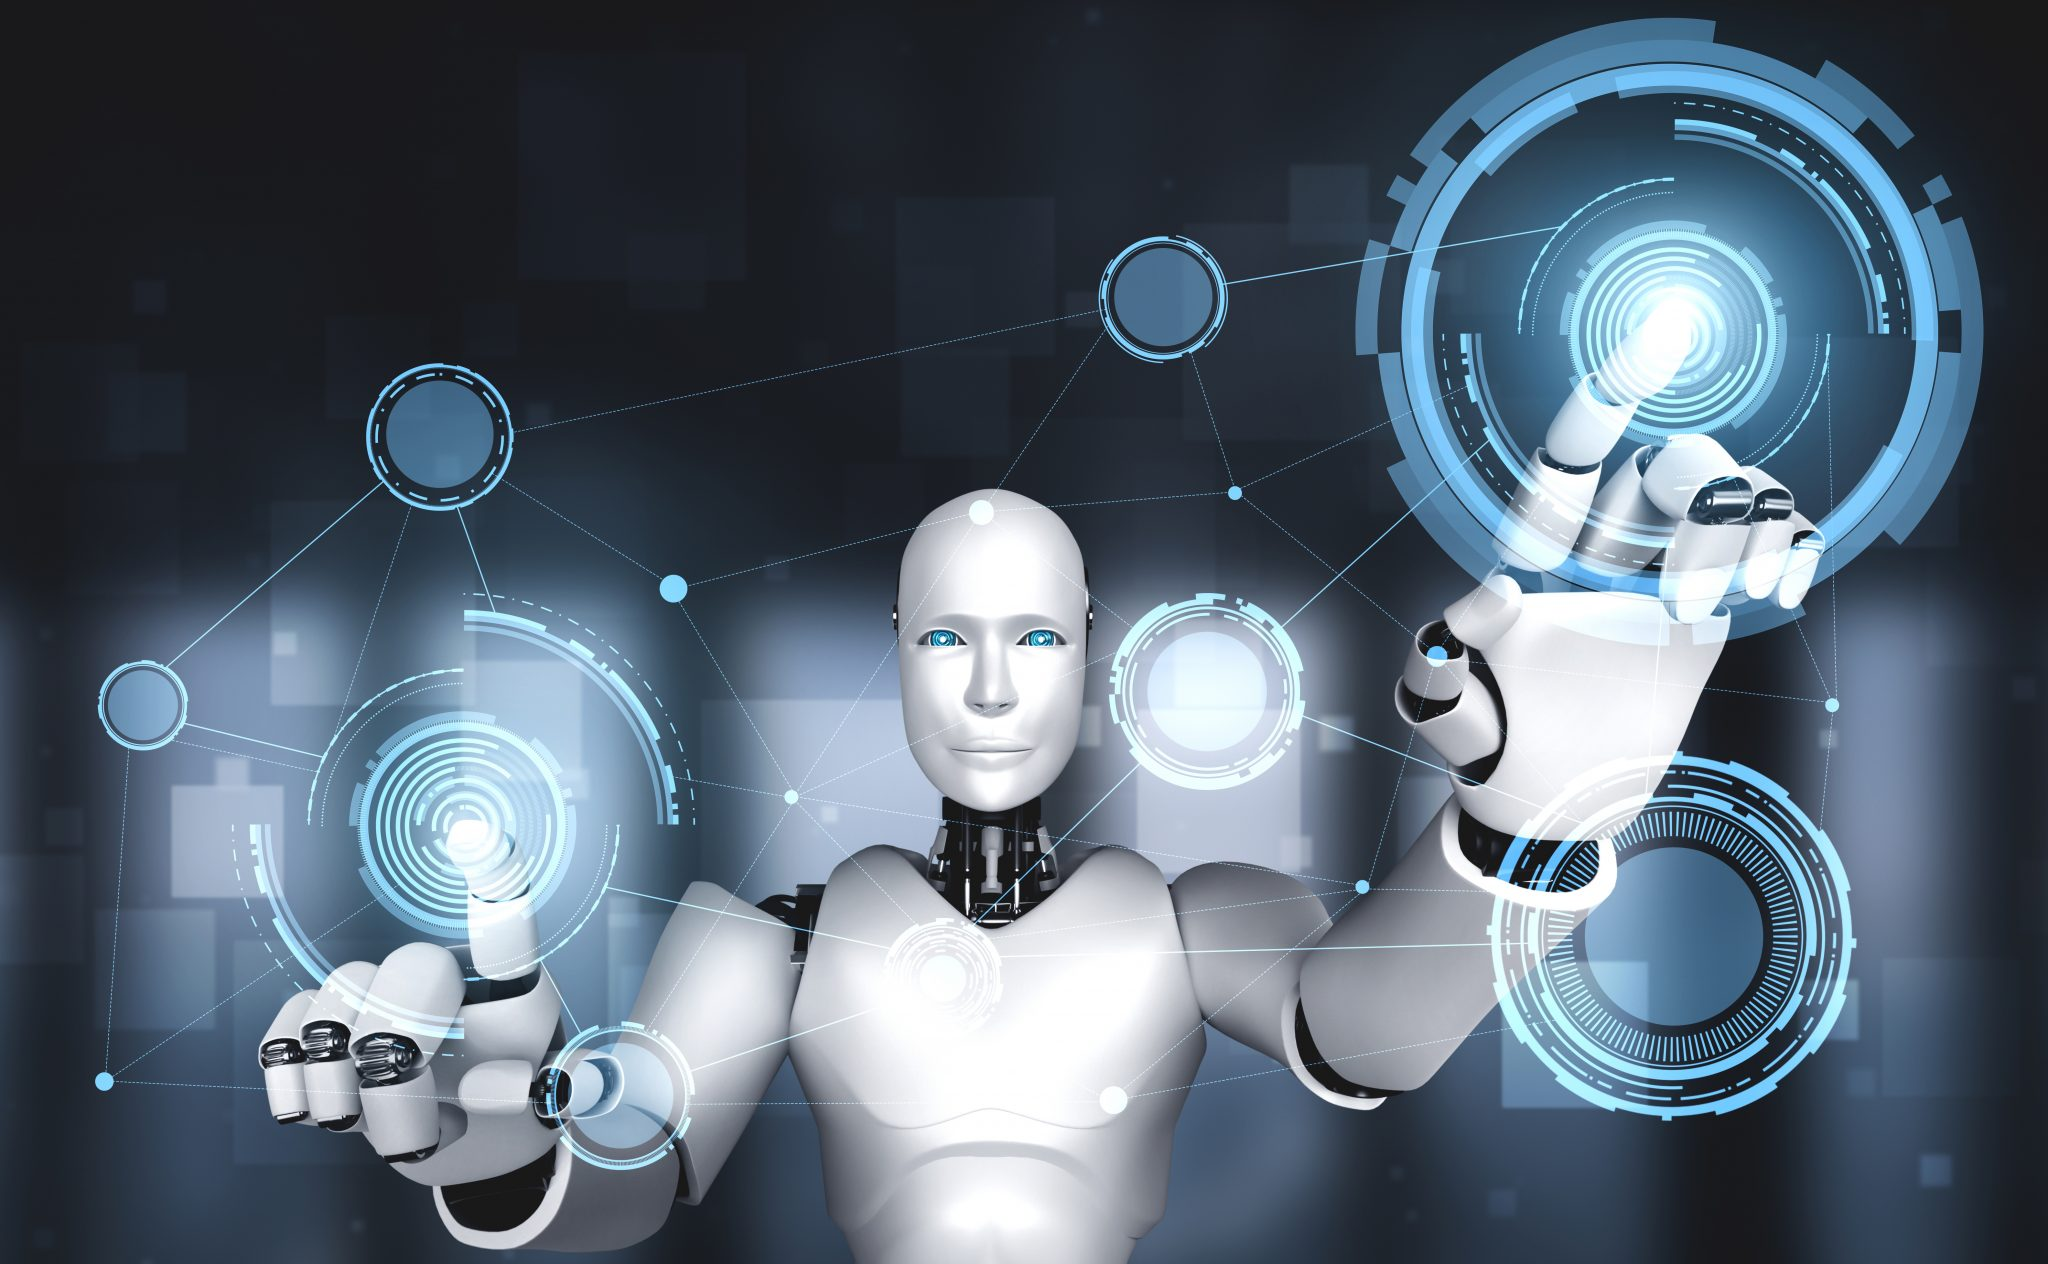 Affordable RPA is Welcome News for SMBs